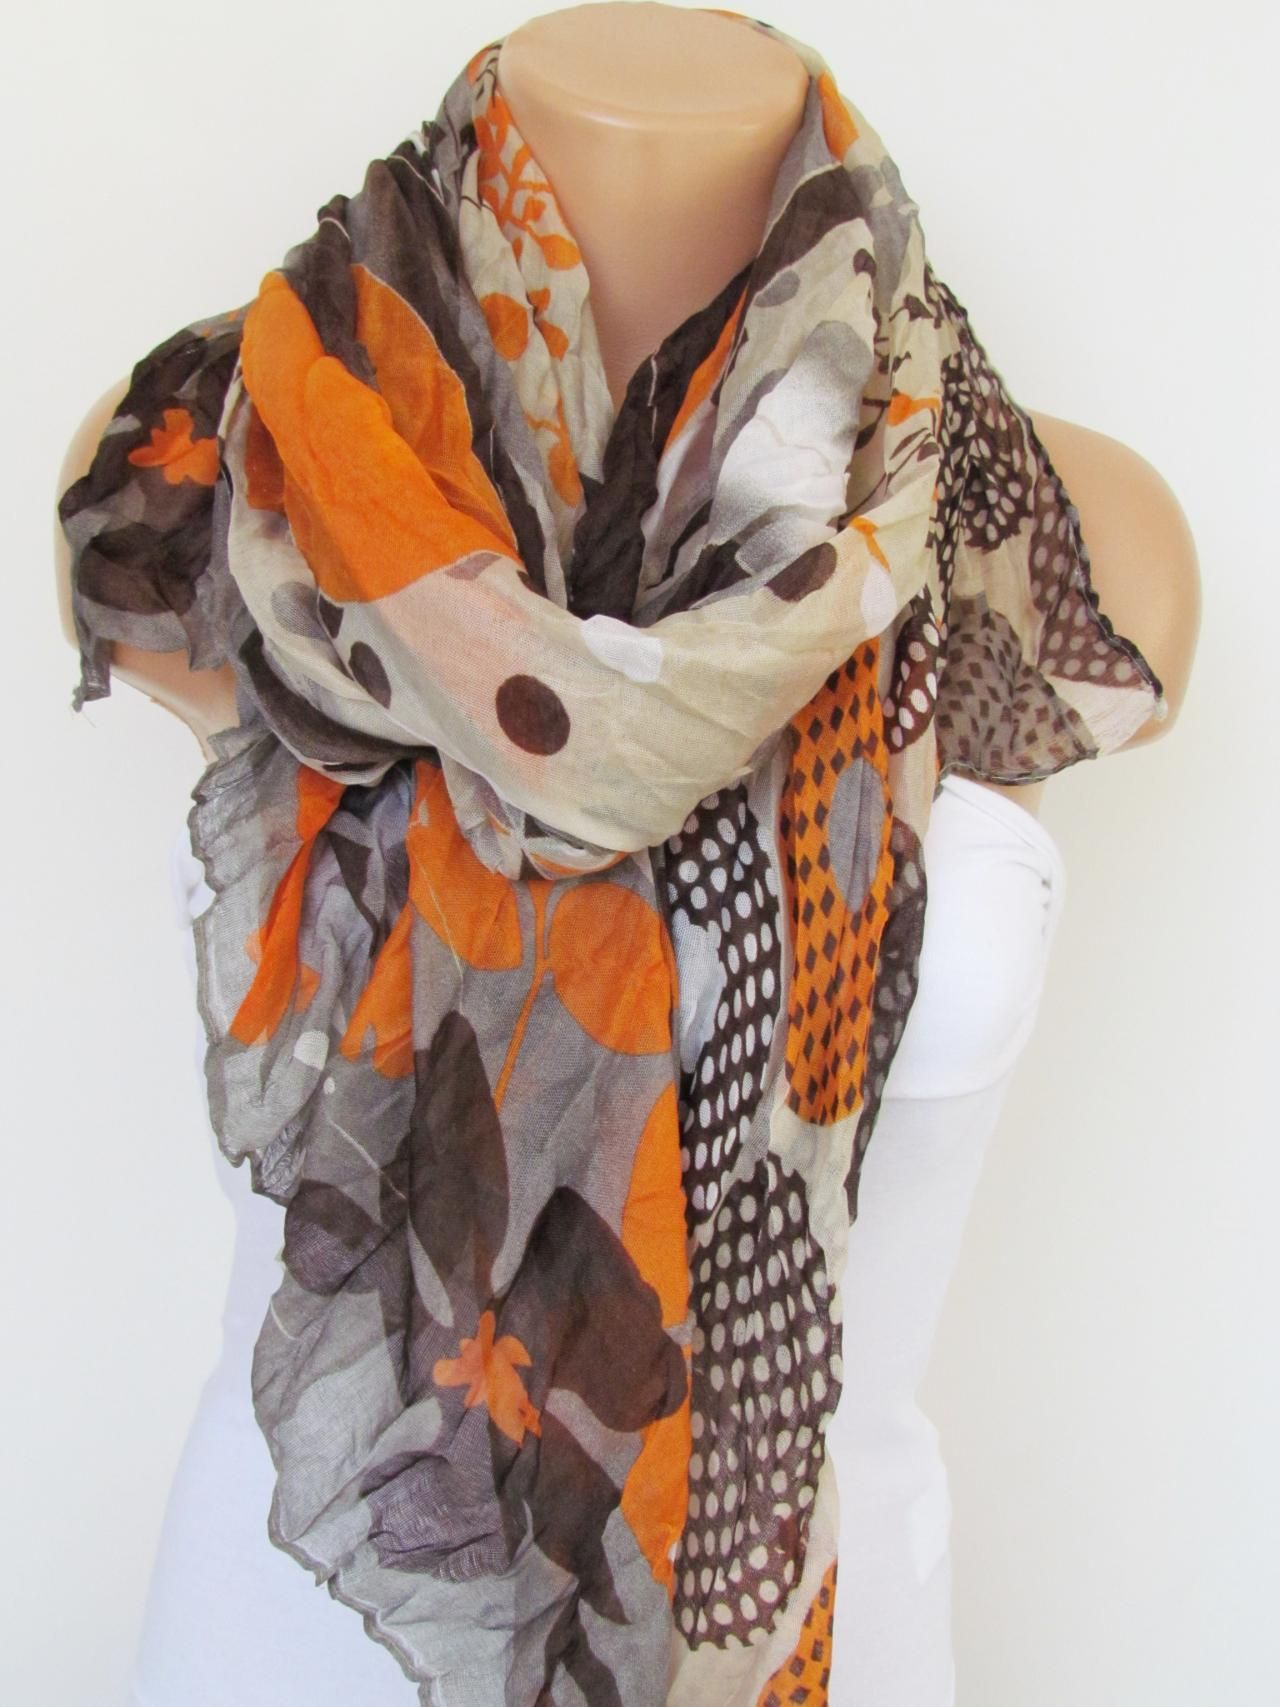 0a28f3fc4613d Orange Brown and Cream Floral Polka-dot Pattern Scarf Spring Summer Scarf  Infinity Scarf Women's Fashion Accessories Trend Holidays Easter Gift Ideas  For ...